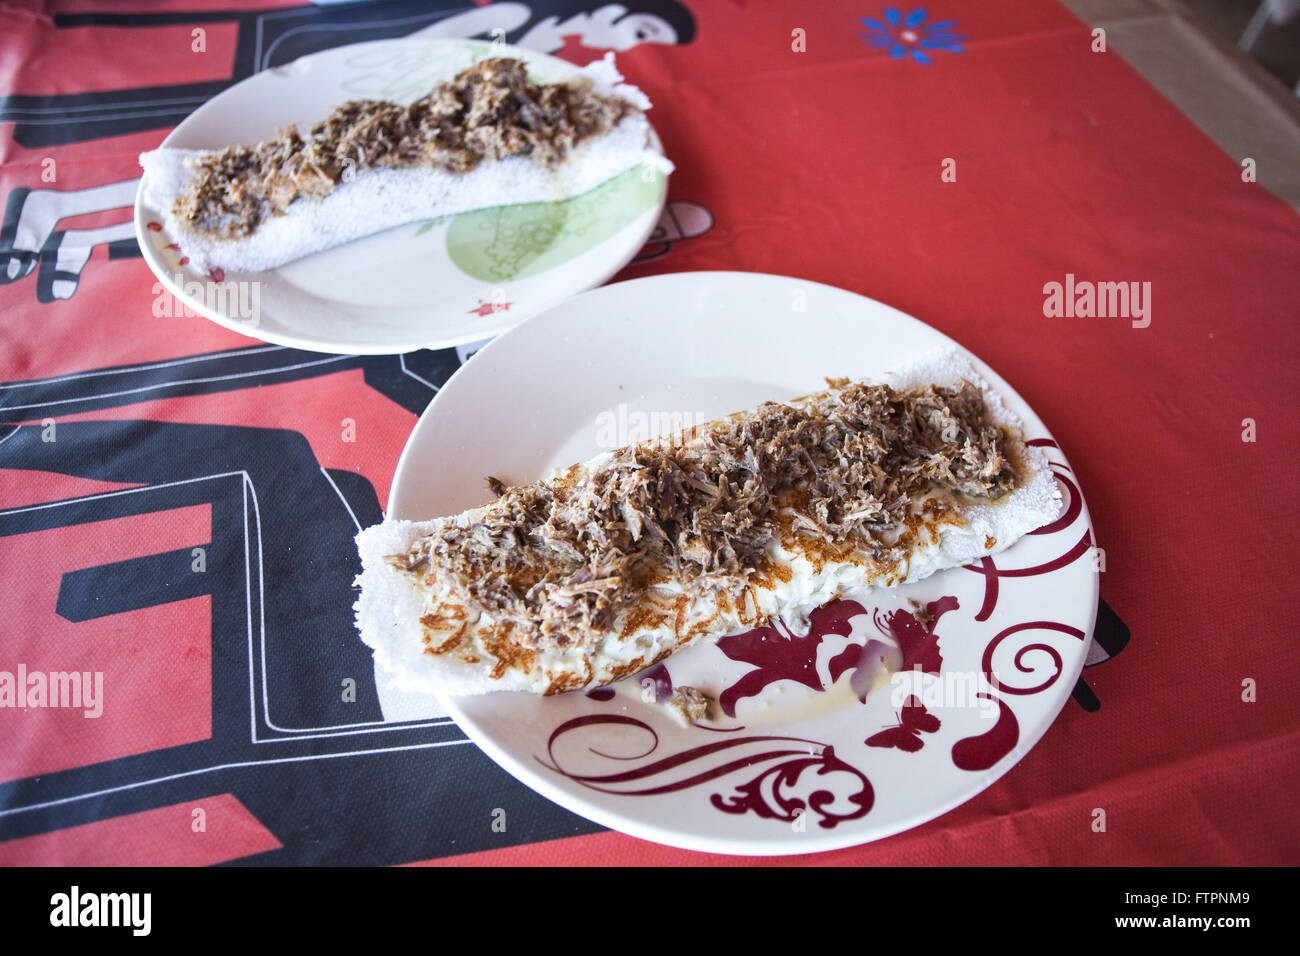 Tapioca with jerky - Northeastern typical food gum base cassava - Stock Image